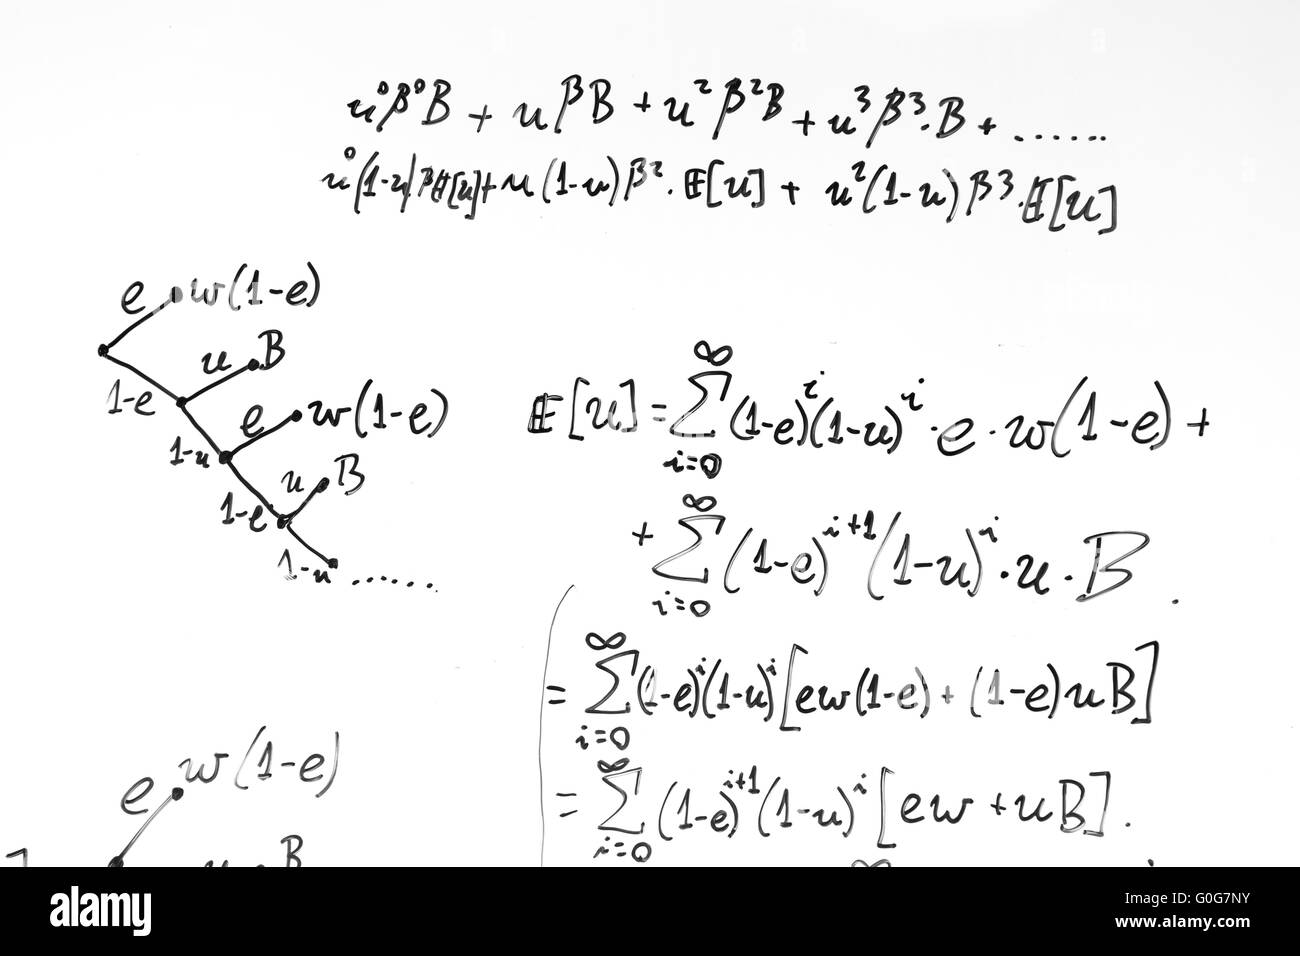 Complex math formulas on whiteboard. Mathematics and science with economics - Stock Image